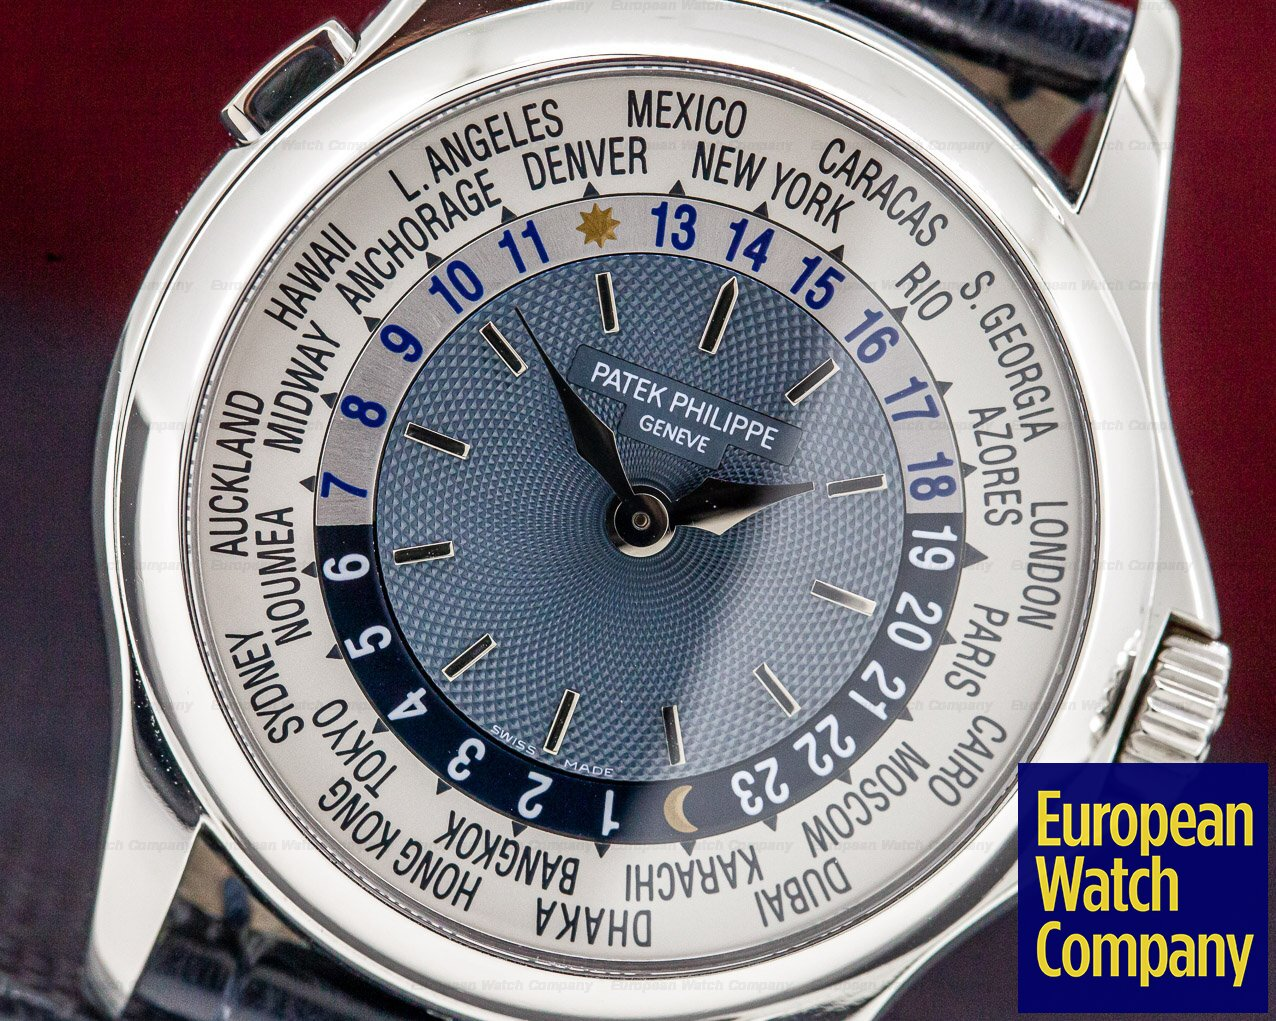 Patek Philippe 5110P-001 World Time Platinum